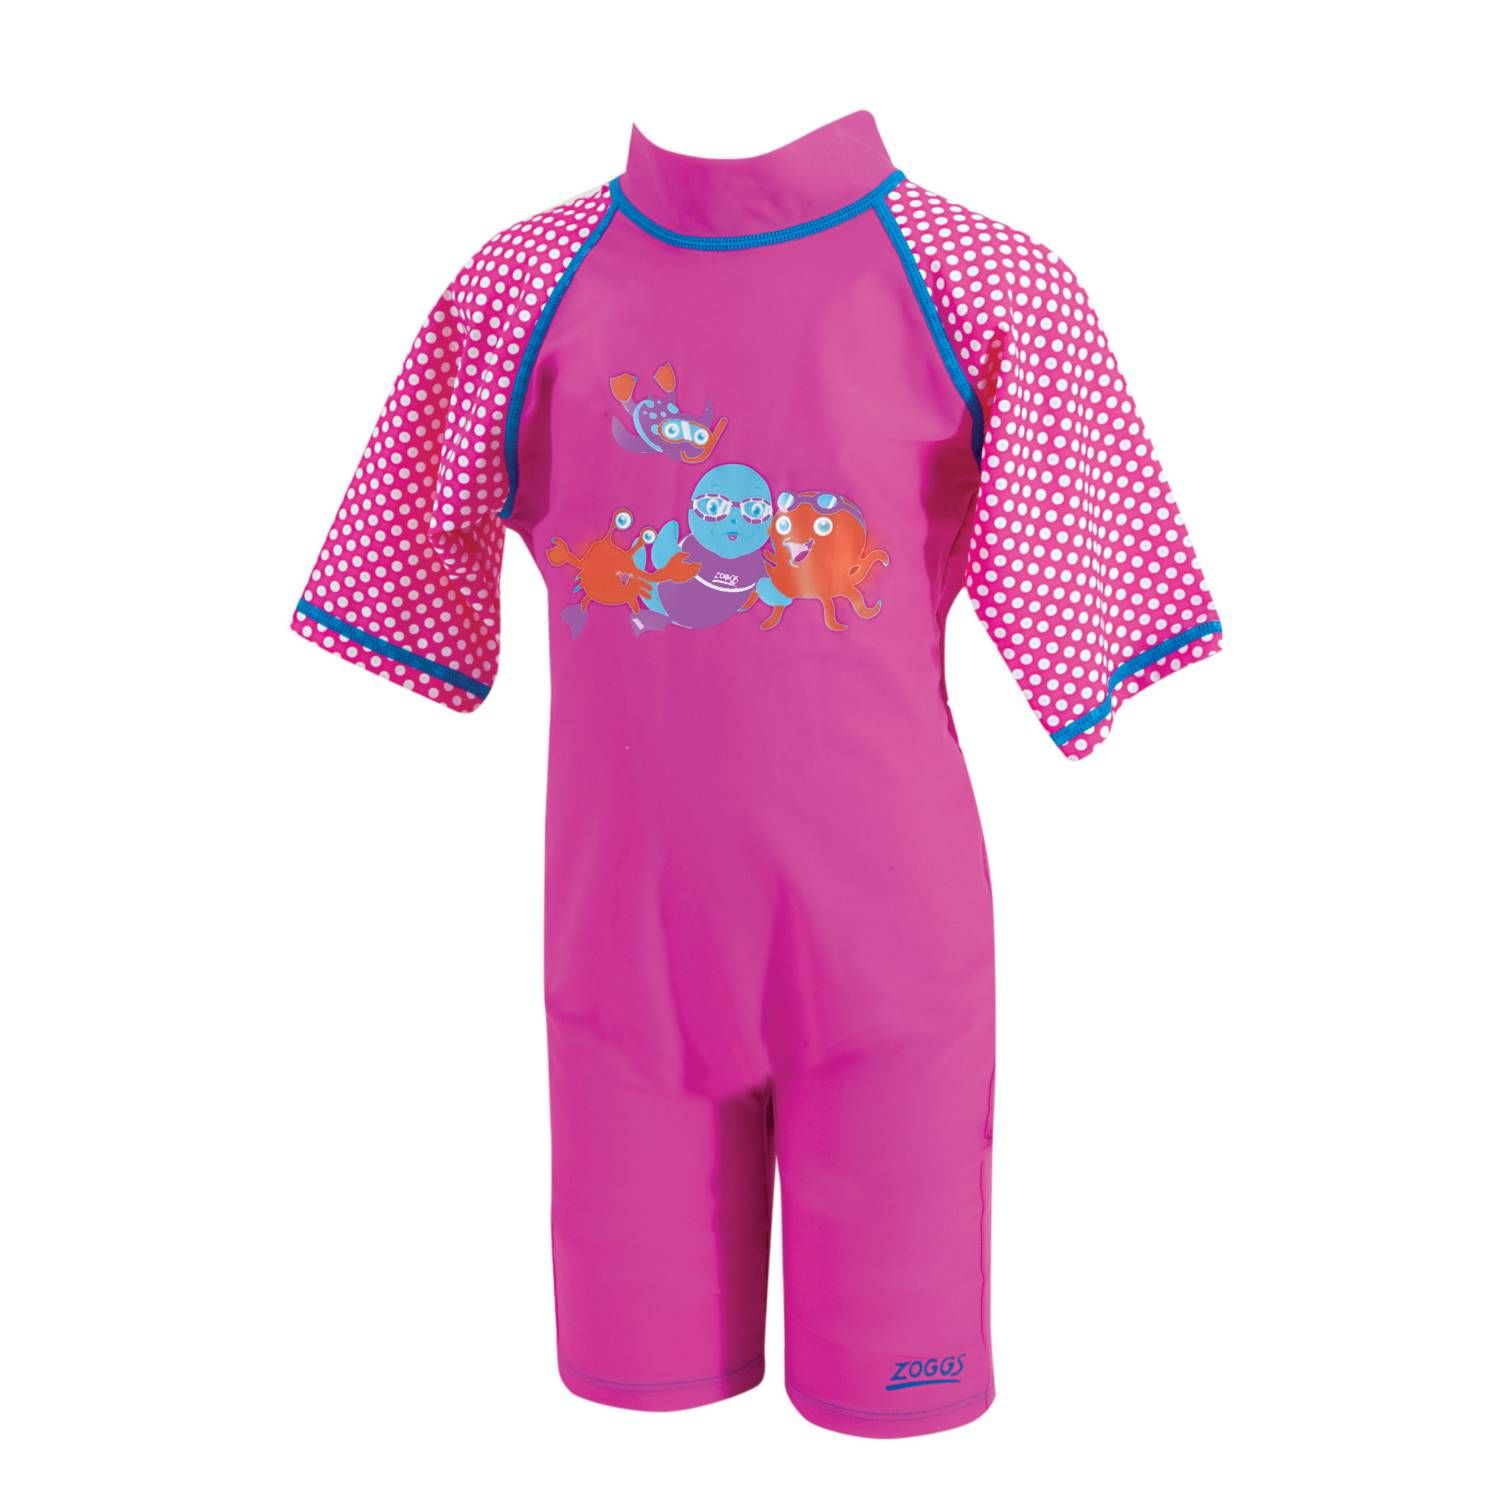 Sun Protection Swimsuit Pink - 2-3 Years